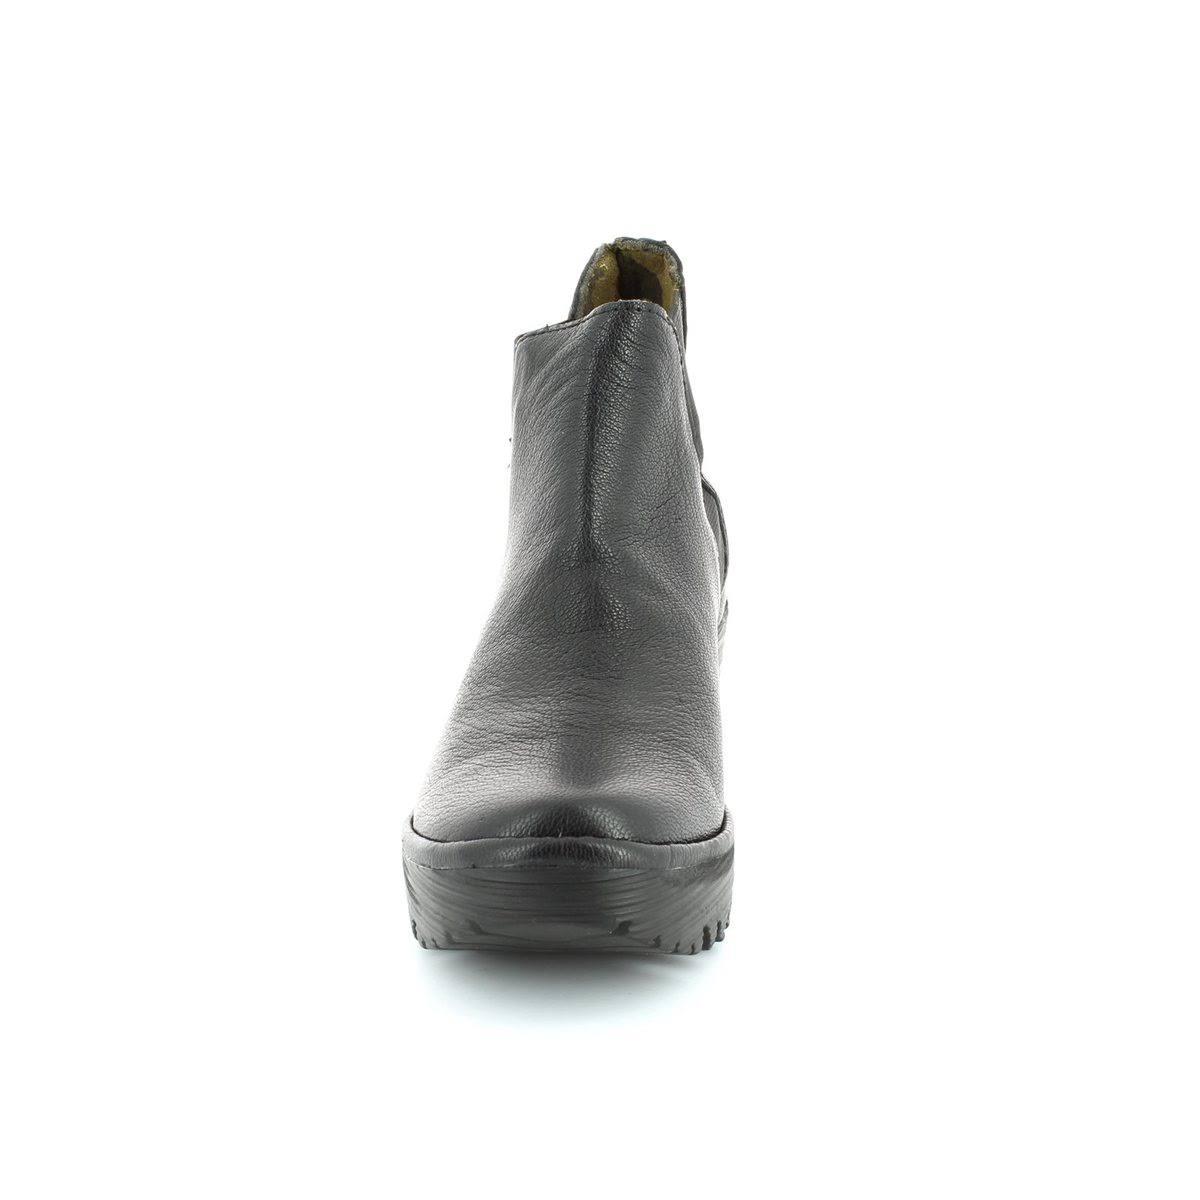 Eu 7 Ankle Black 5 London Fly Leather Boots Yoss Uk 41 YEtfw8q